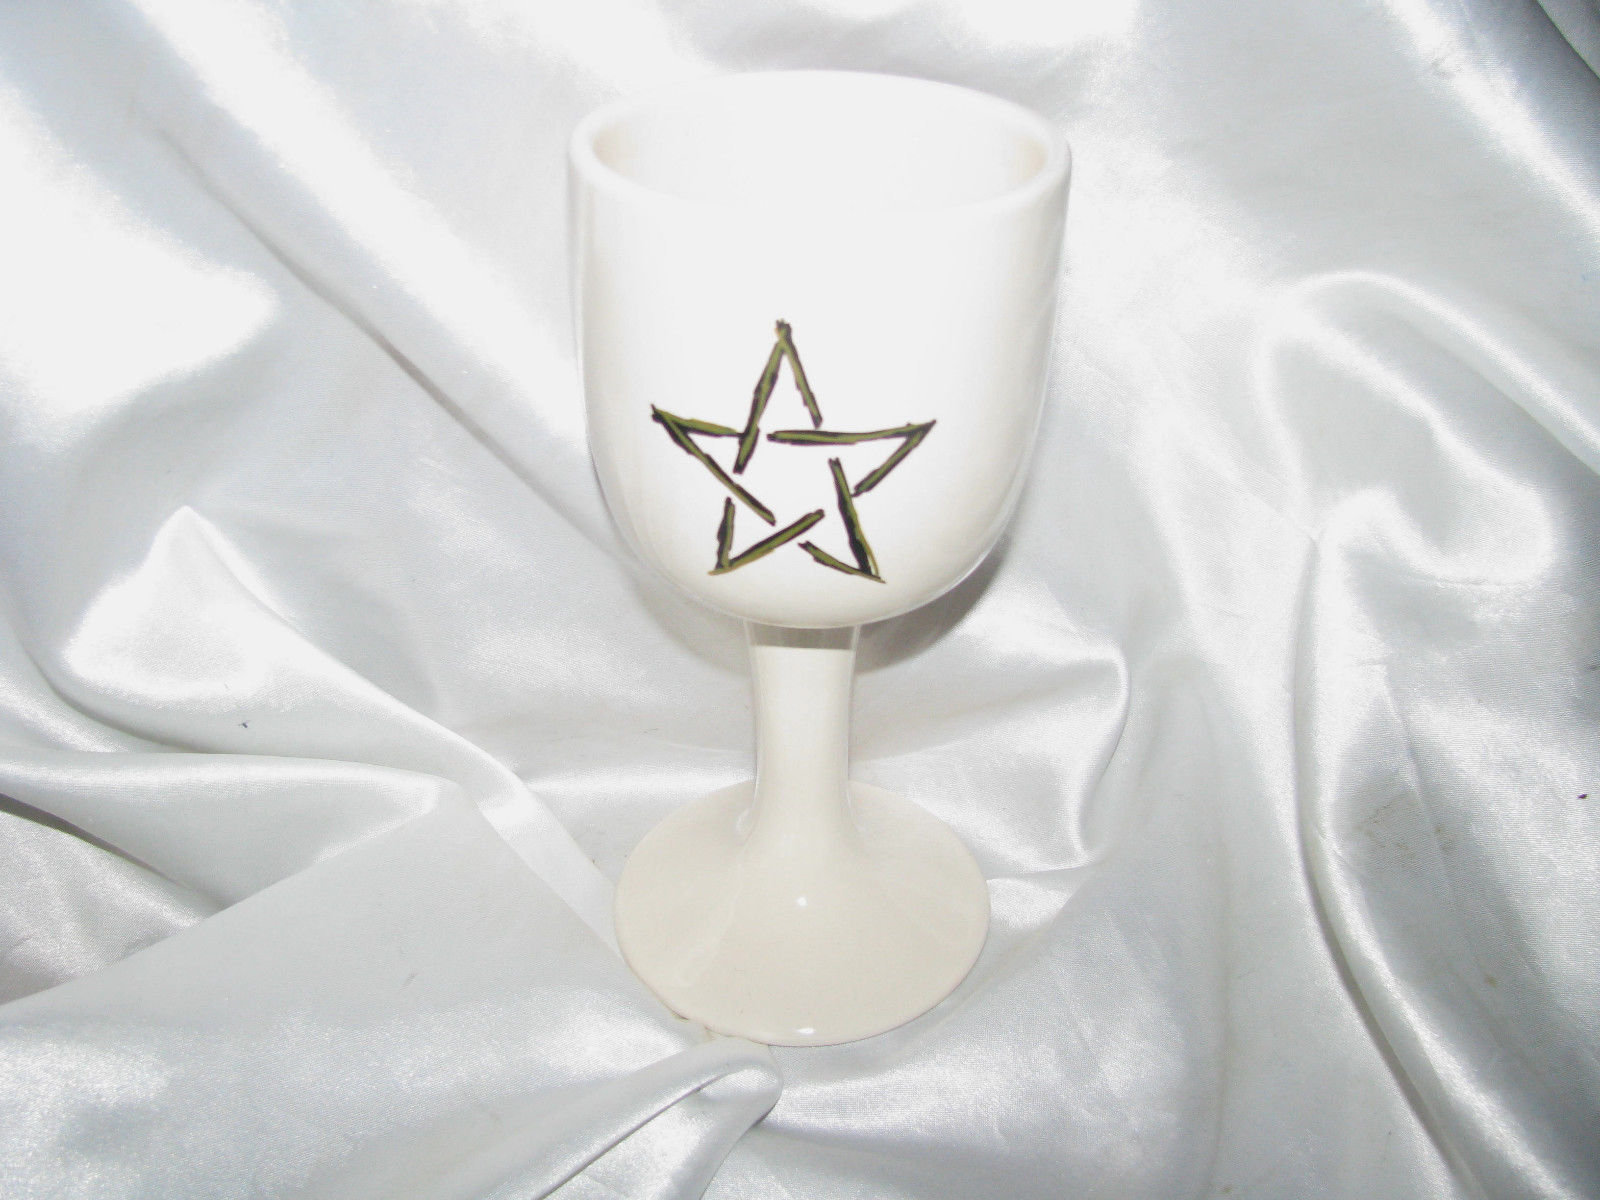 Unique Gallant Incubus Seeking Soul Mate – Lovely Hand-Crafted Ritual Chalice